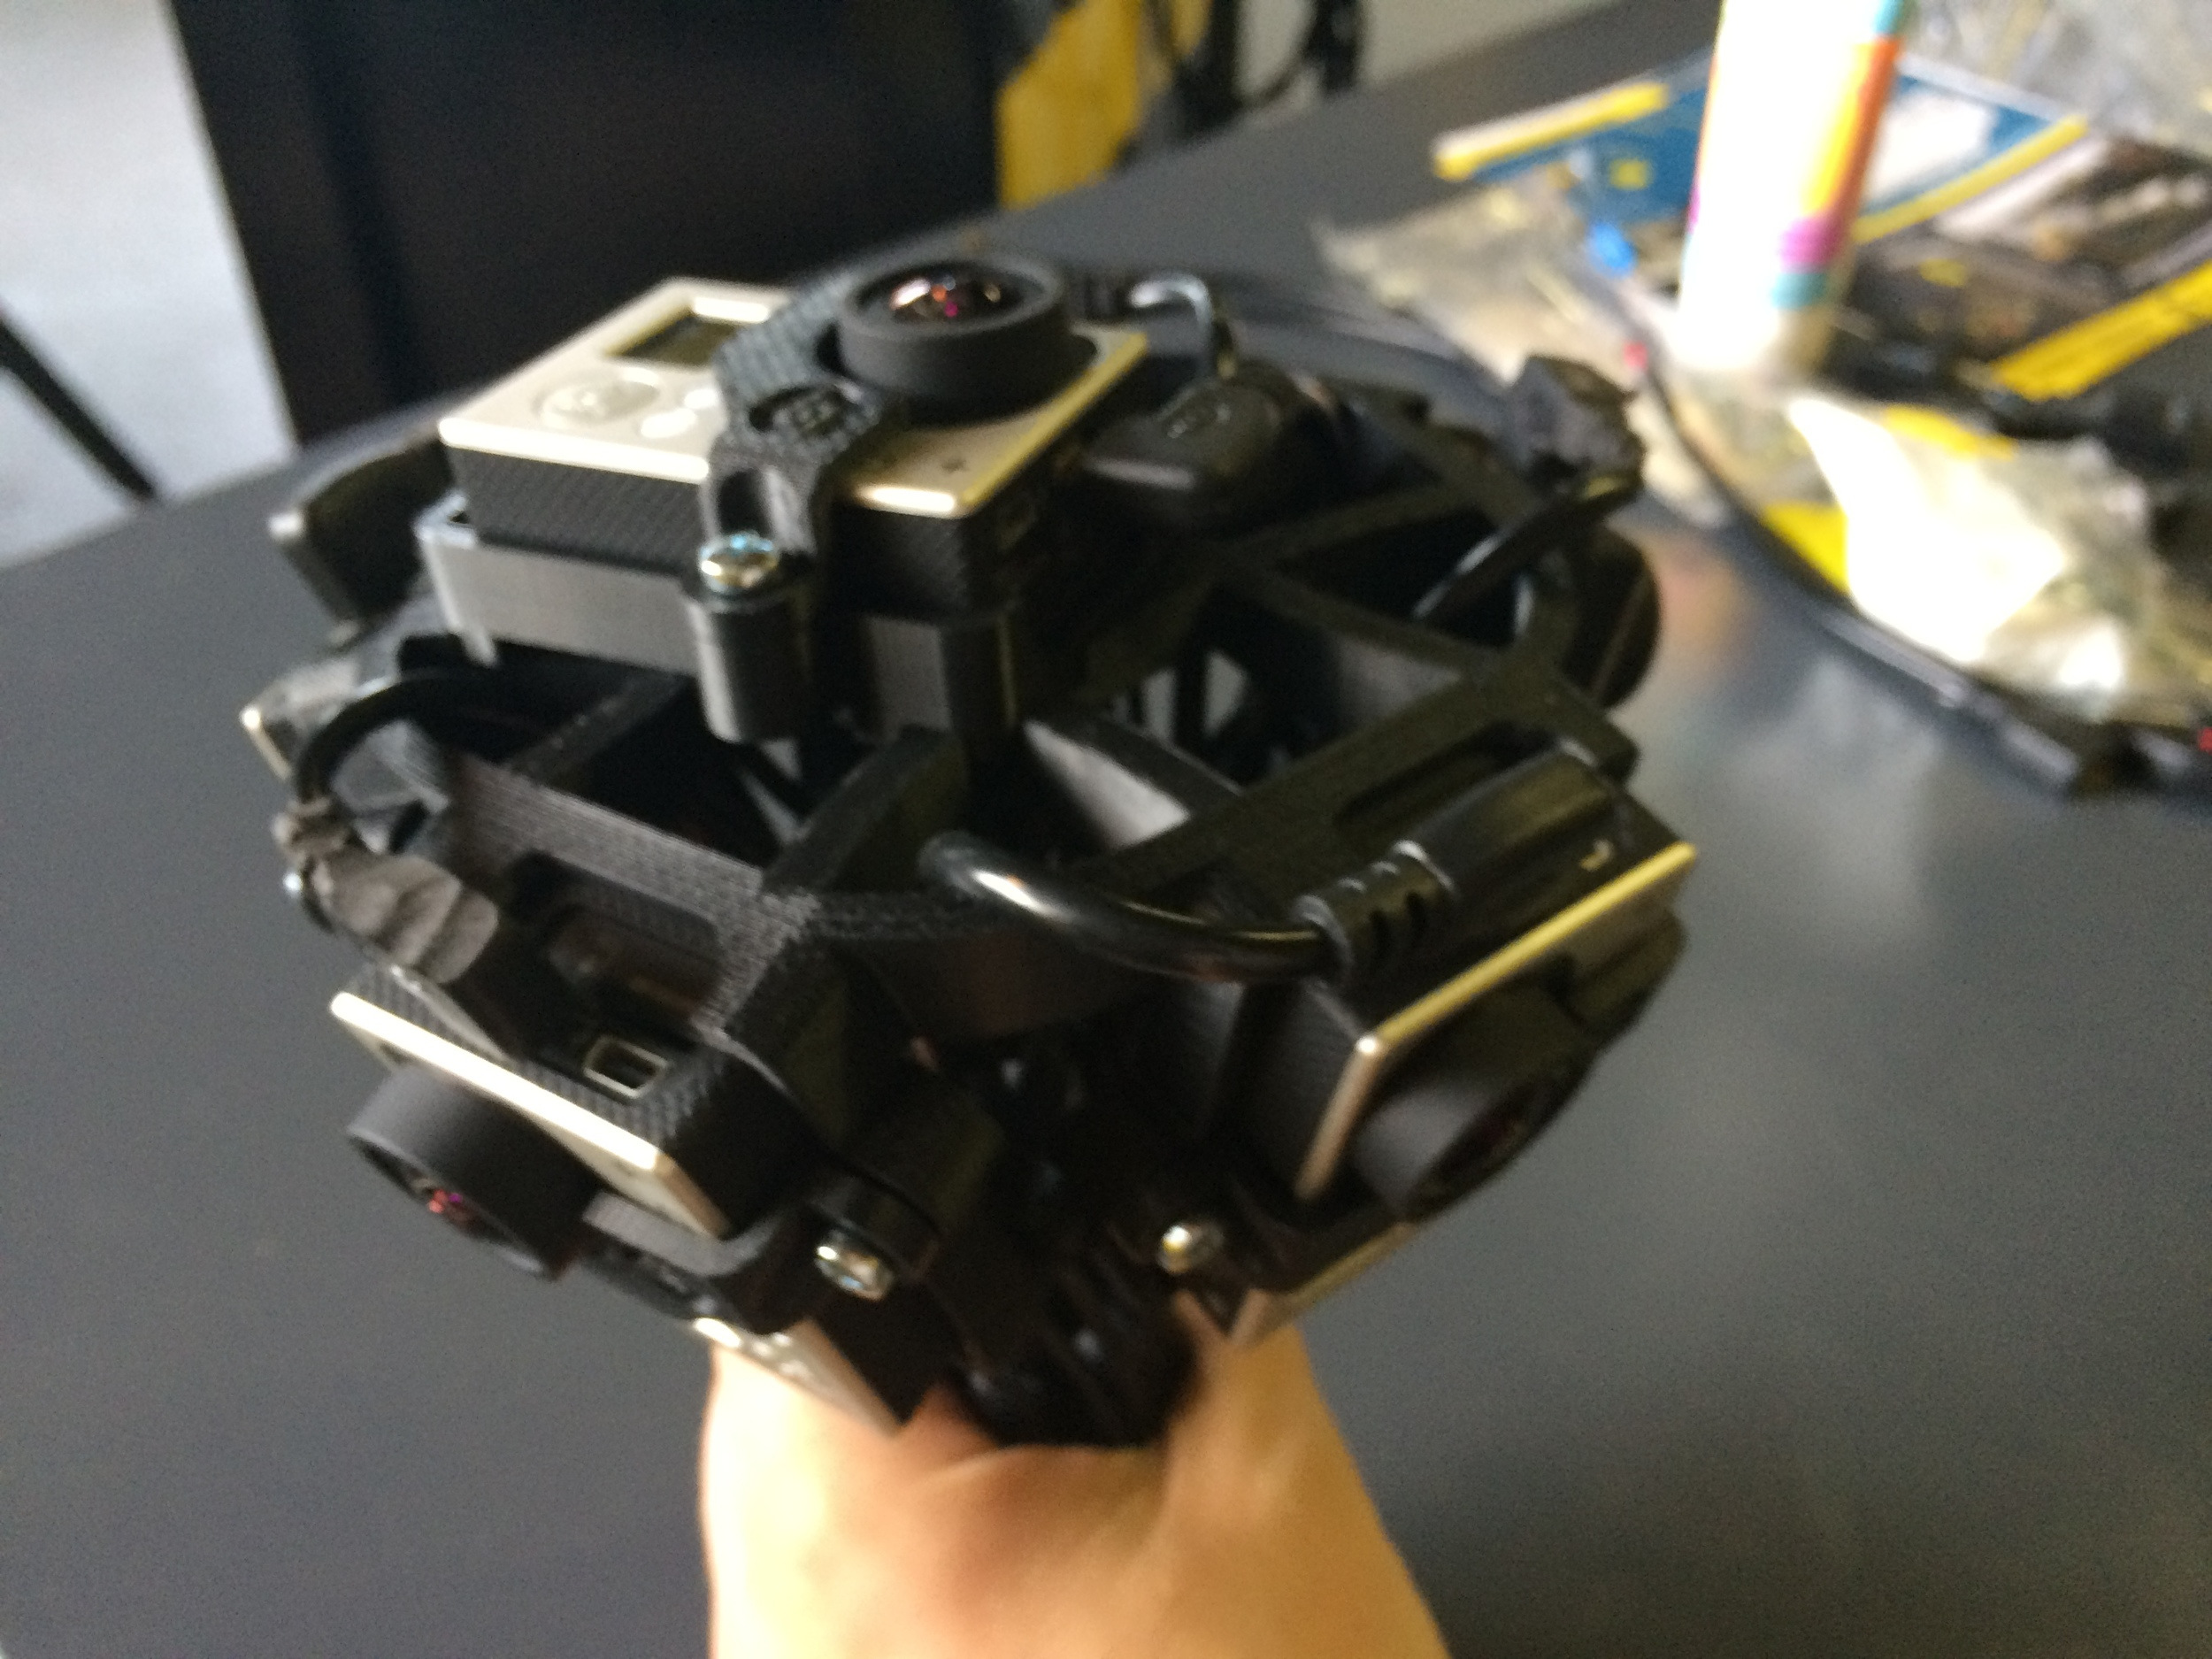 My GoPro holder after 3d printing, showing 6 GoPros installed and cables properly routed